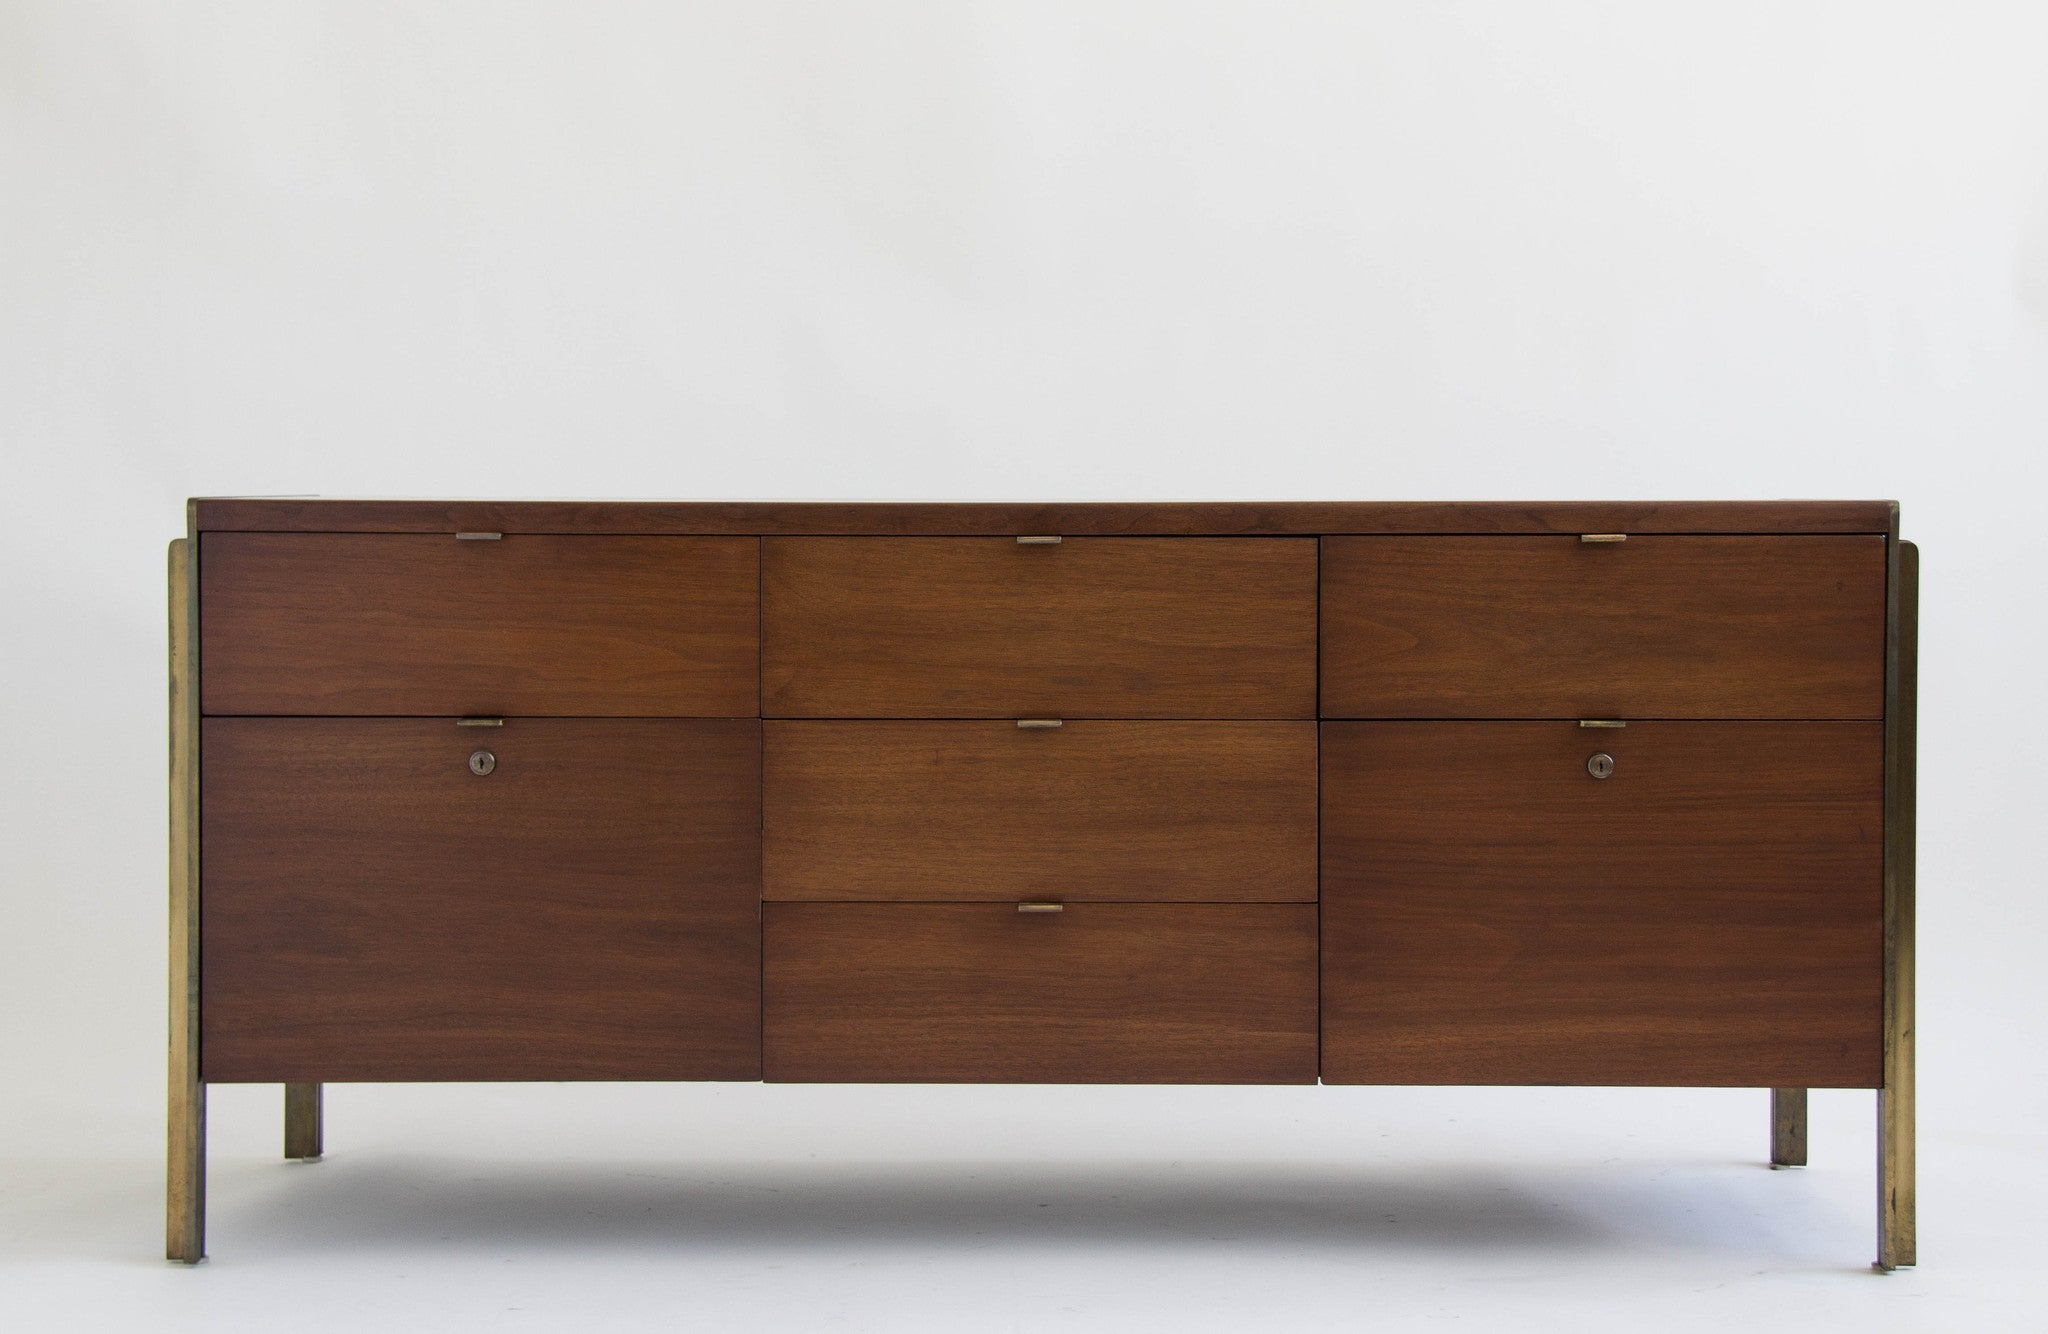 American Made Walnut and Brass Credenza by Stow Davis